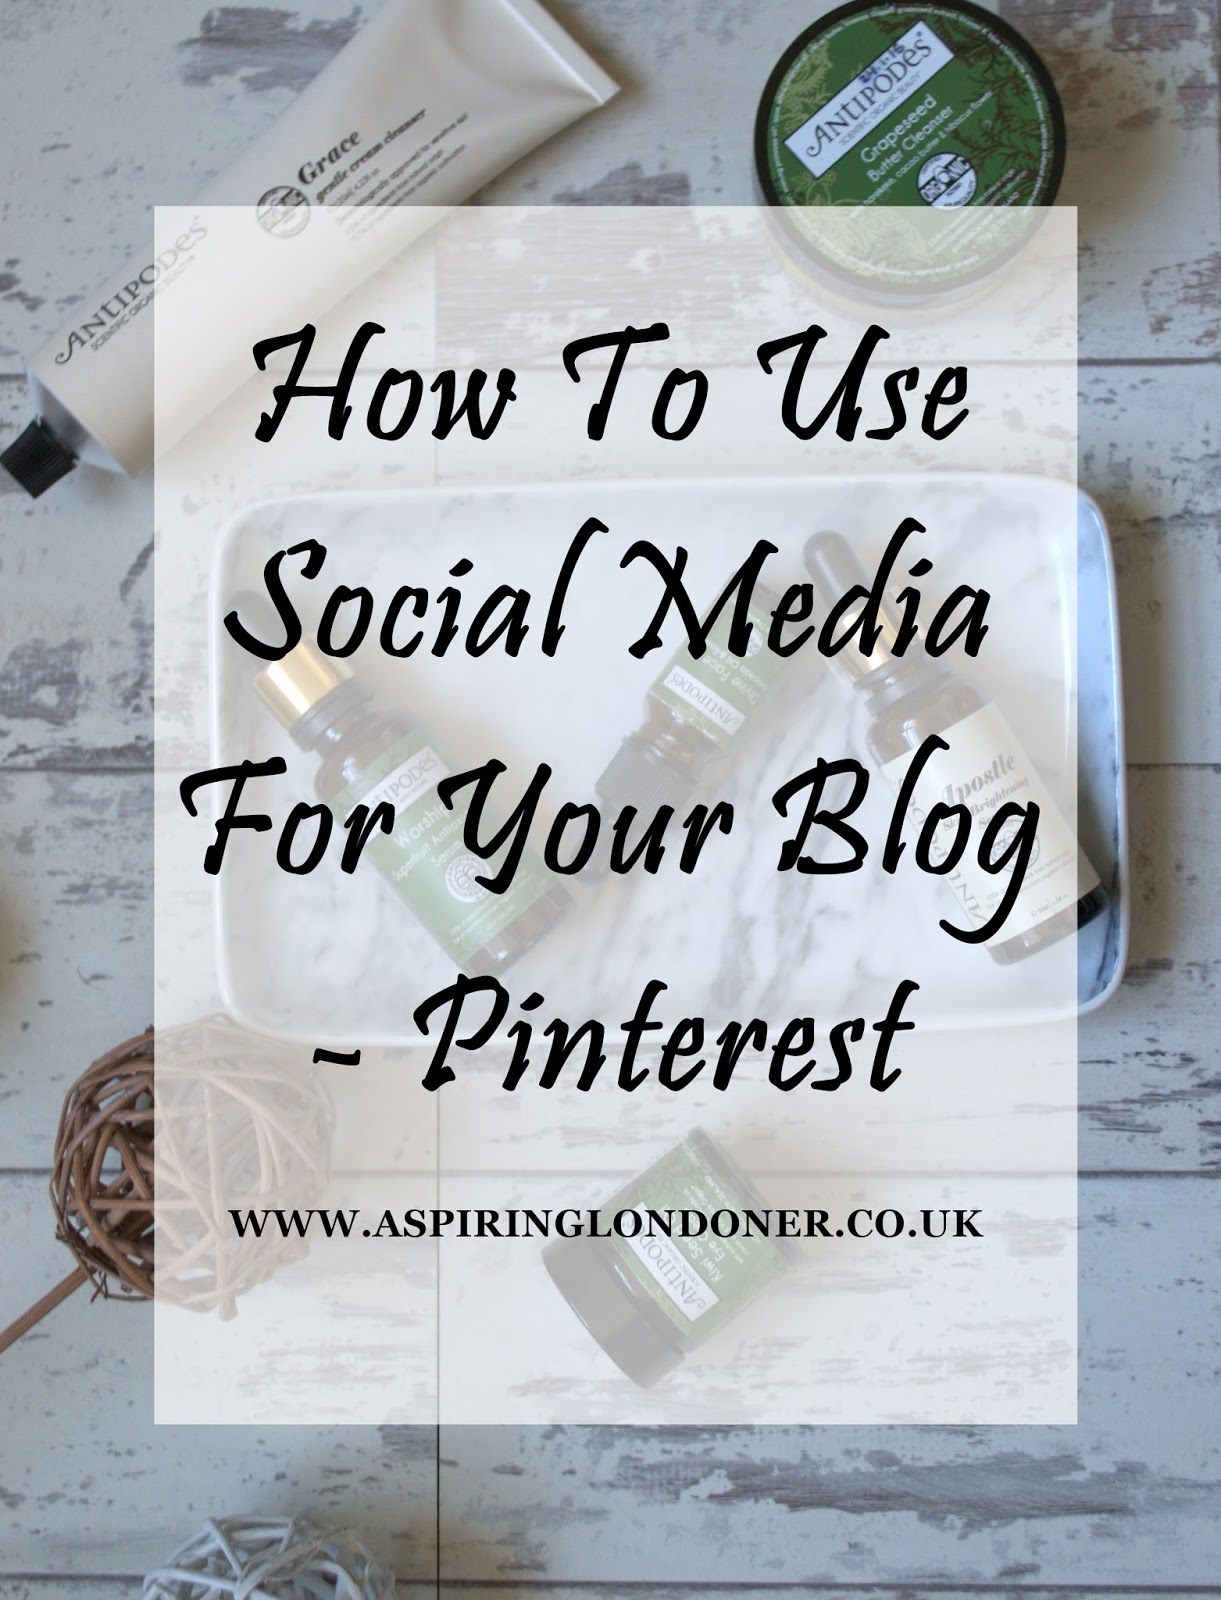 How To Use Social Media For Your Blog Pinterest - Aspiring Londoner